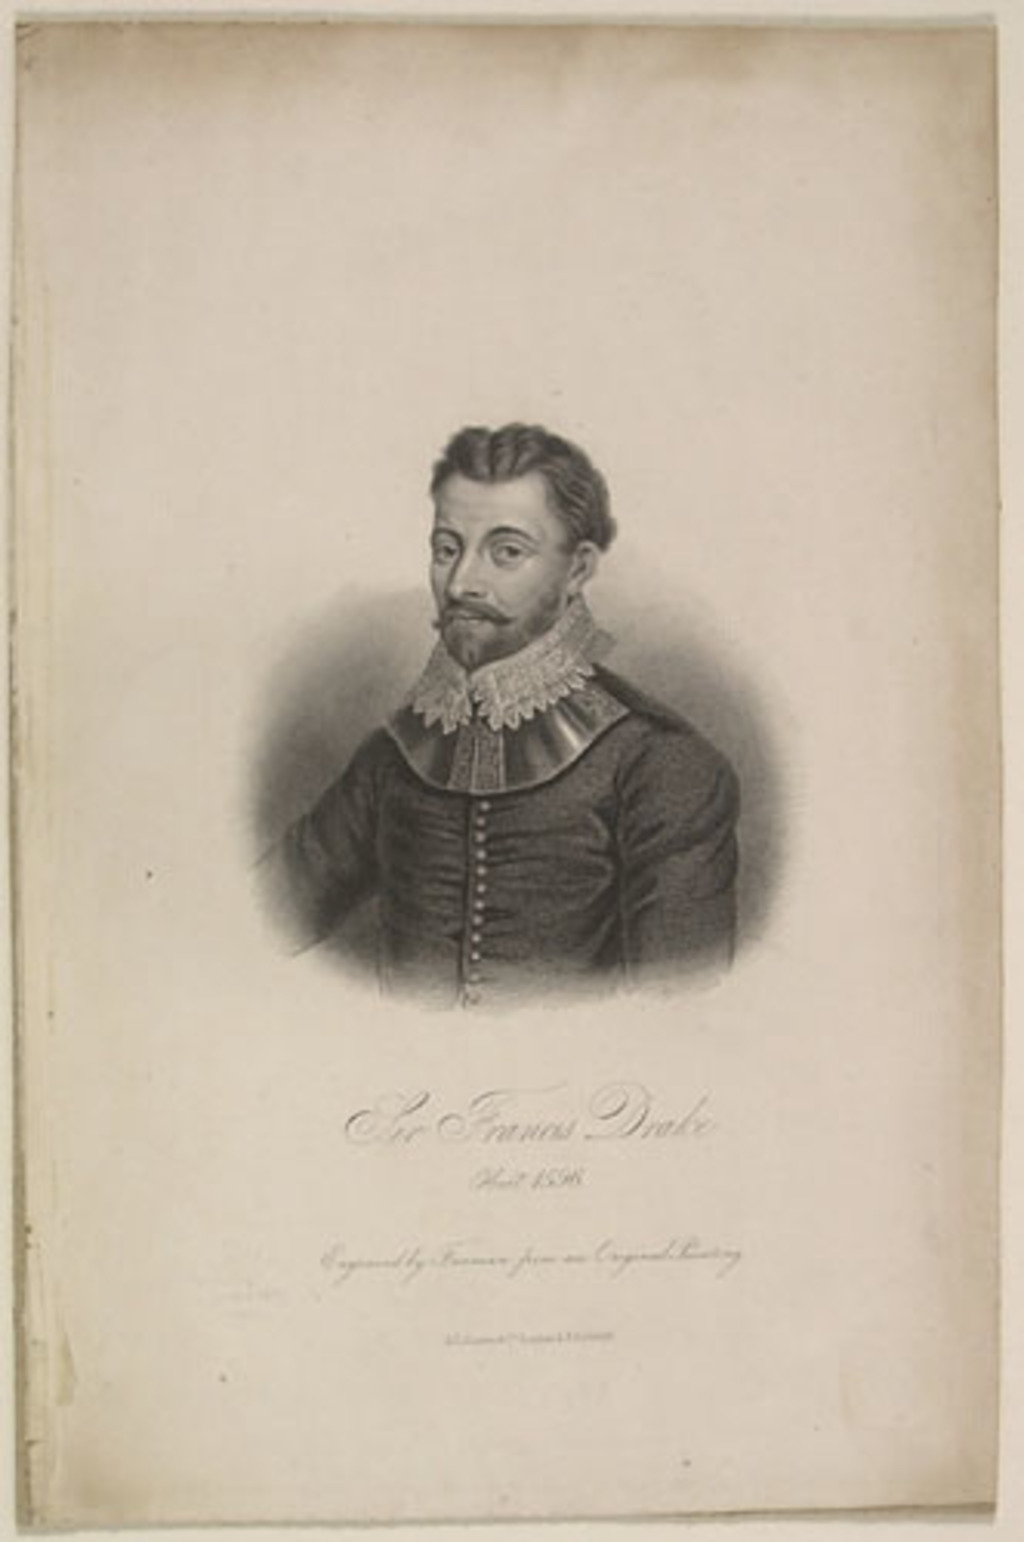 Sir Francis Drake, planche 1 extraite de l'ouvrage Lives of Eminent and Illustrious Englishmen, from Alfred the Great to the Latest Times, vol. II, de George Godfrey Cunningham